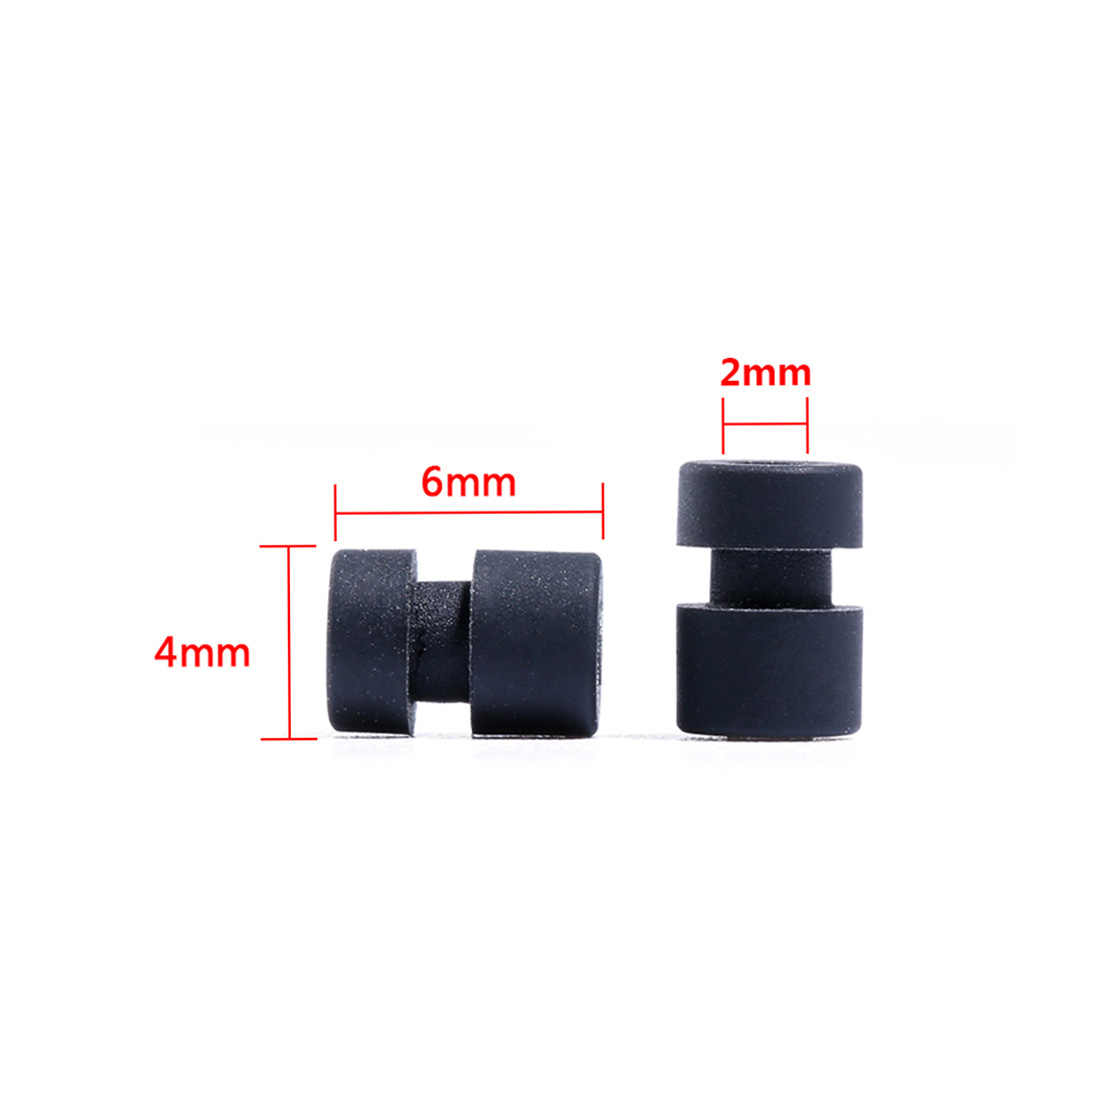 M2 * 4 M2 Anti-Vibratie Wasmachine Rubber Demping Bal voor Flight Controller RC Racing Helicopter 10 Stuk